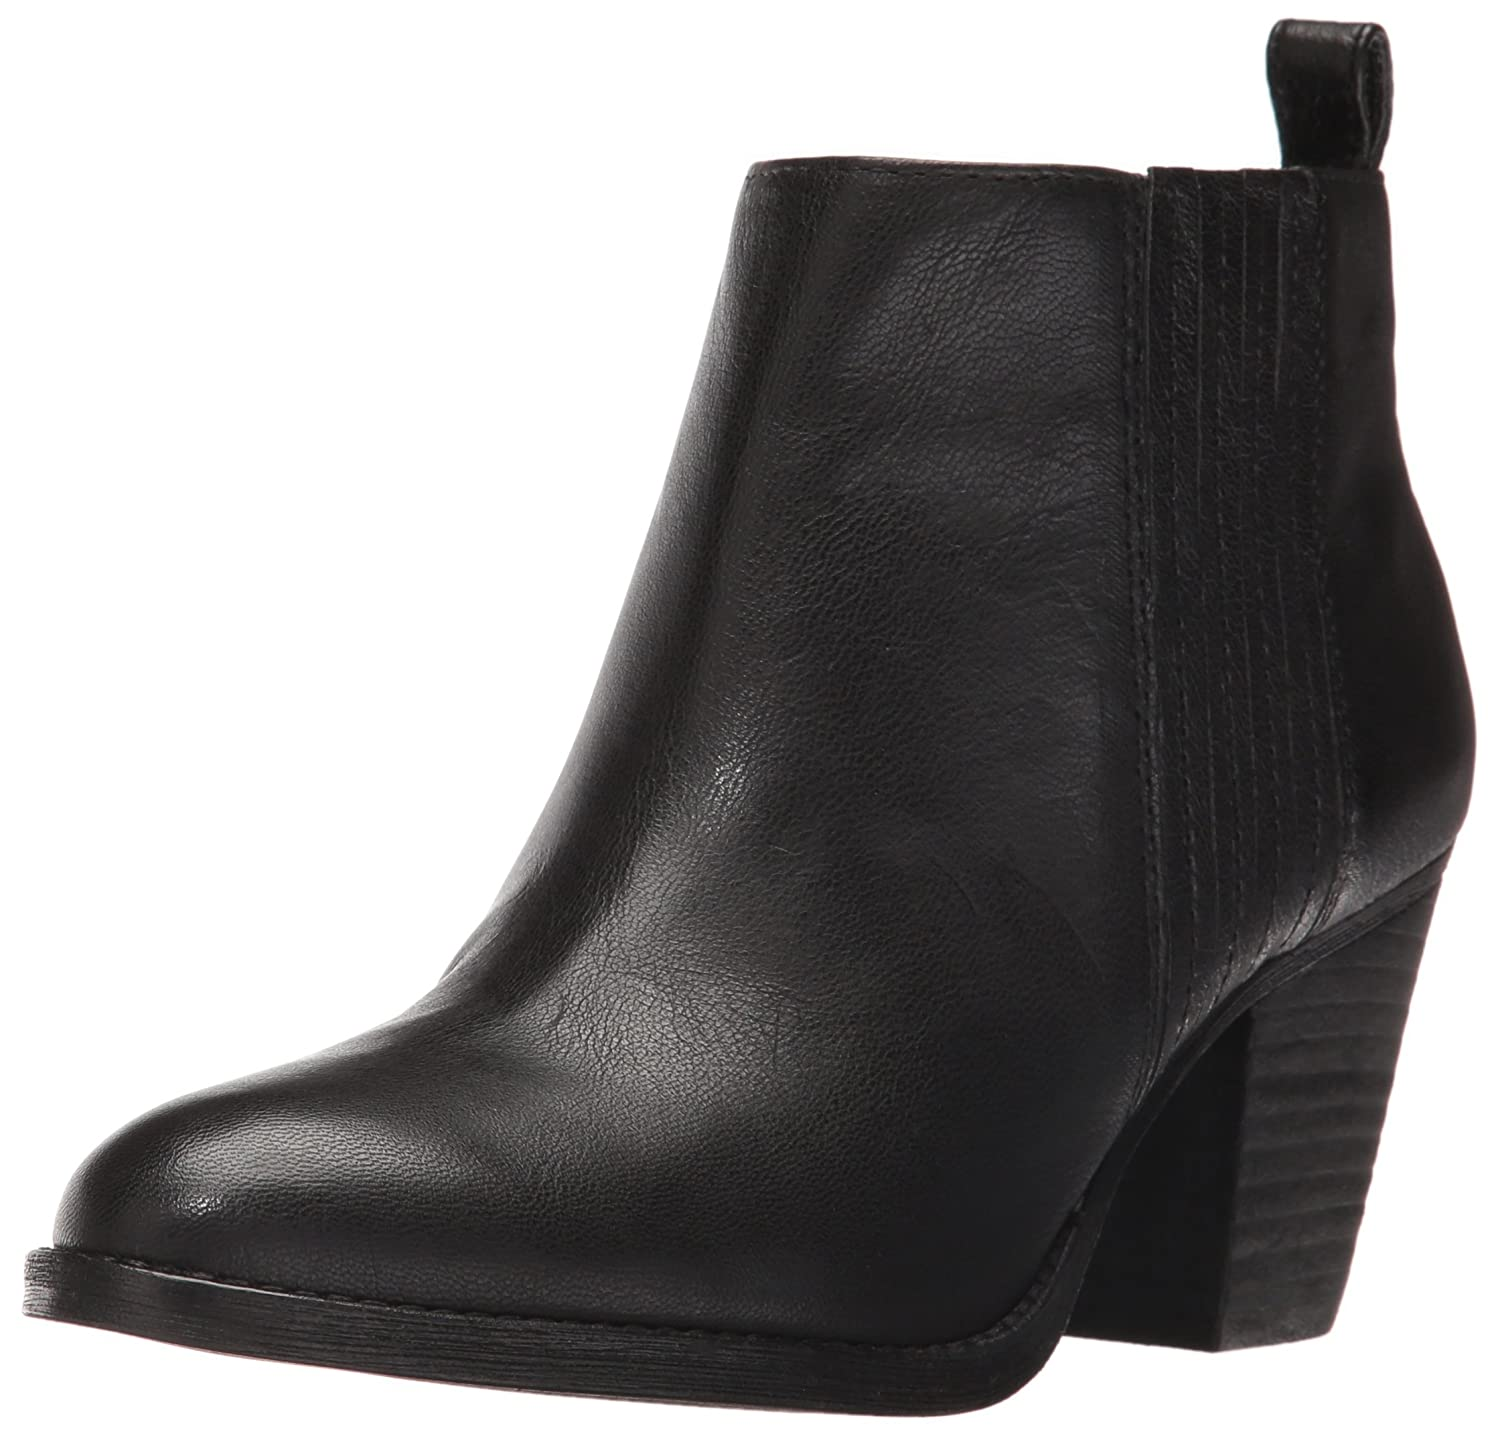 Nine West Women's Fiffi Ankle Bootie B01EWYHCVE 8.5 B(M) US|Black Leather